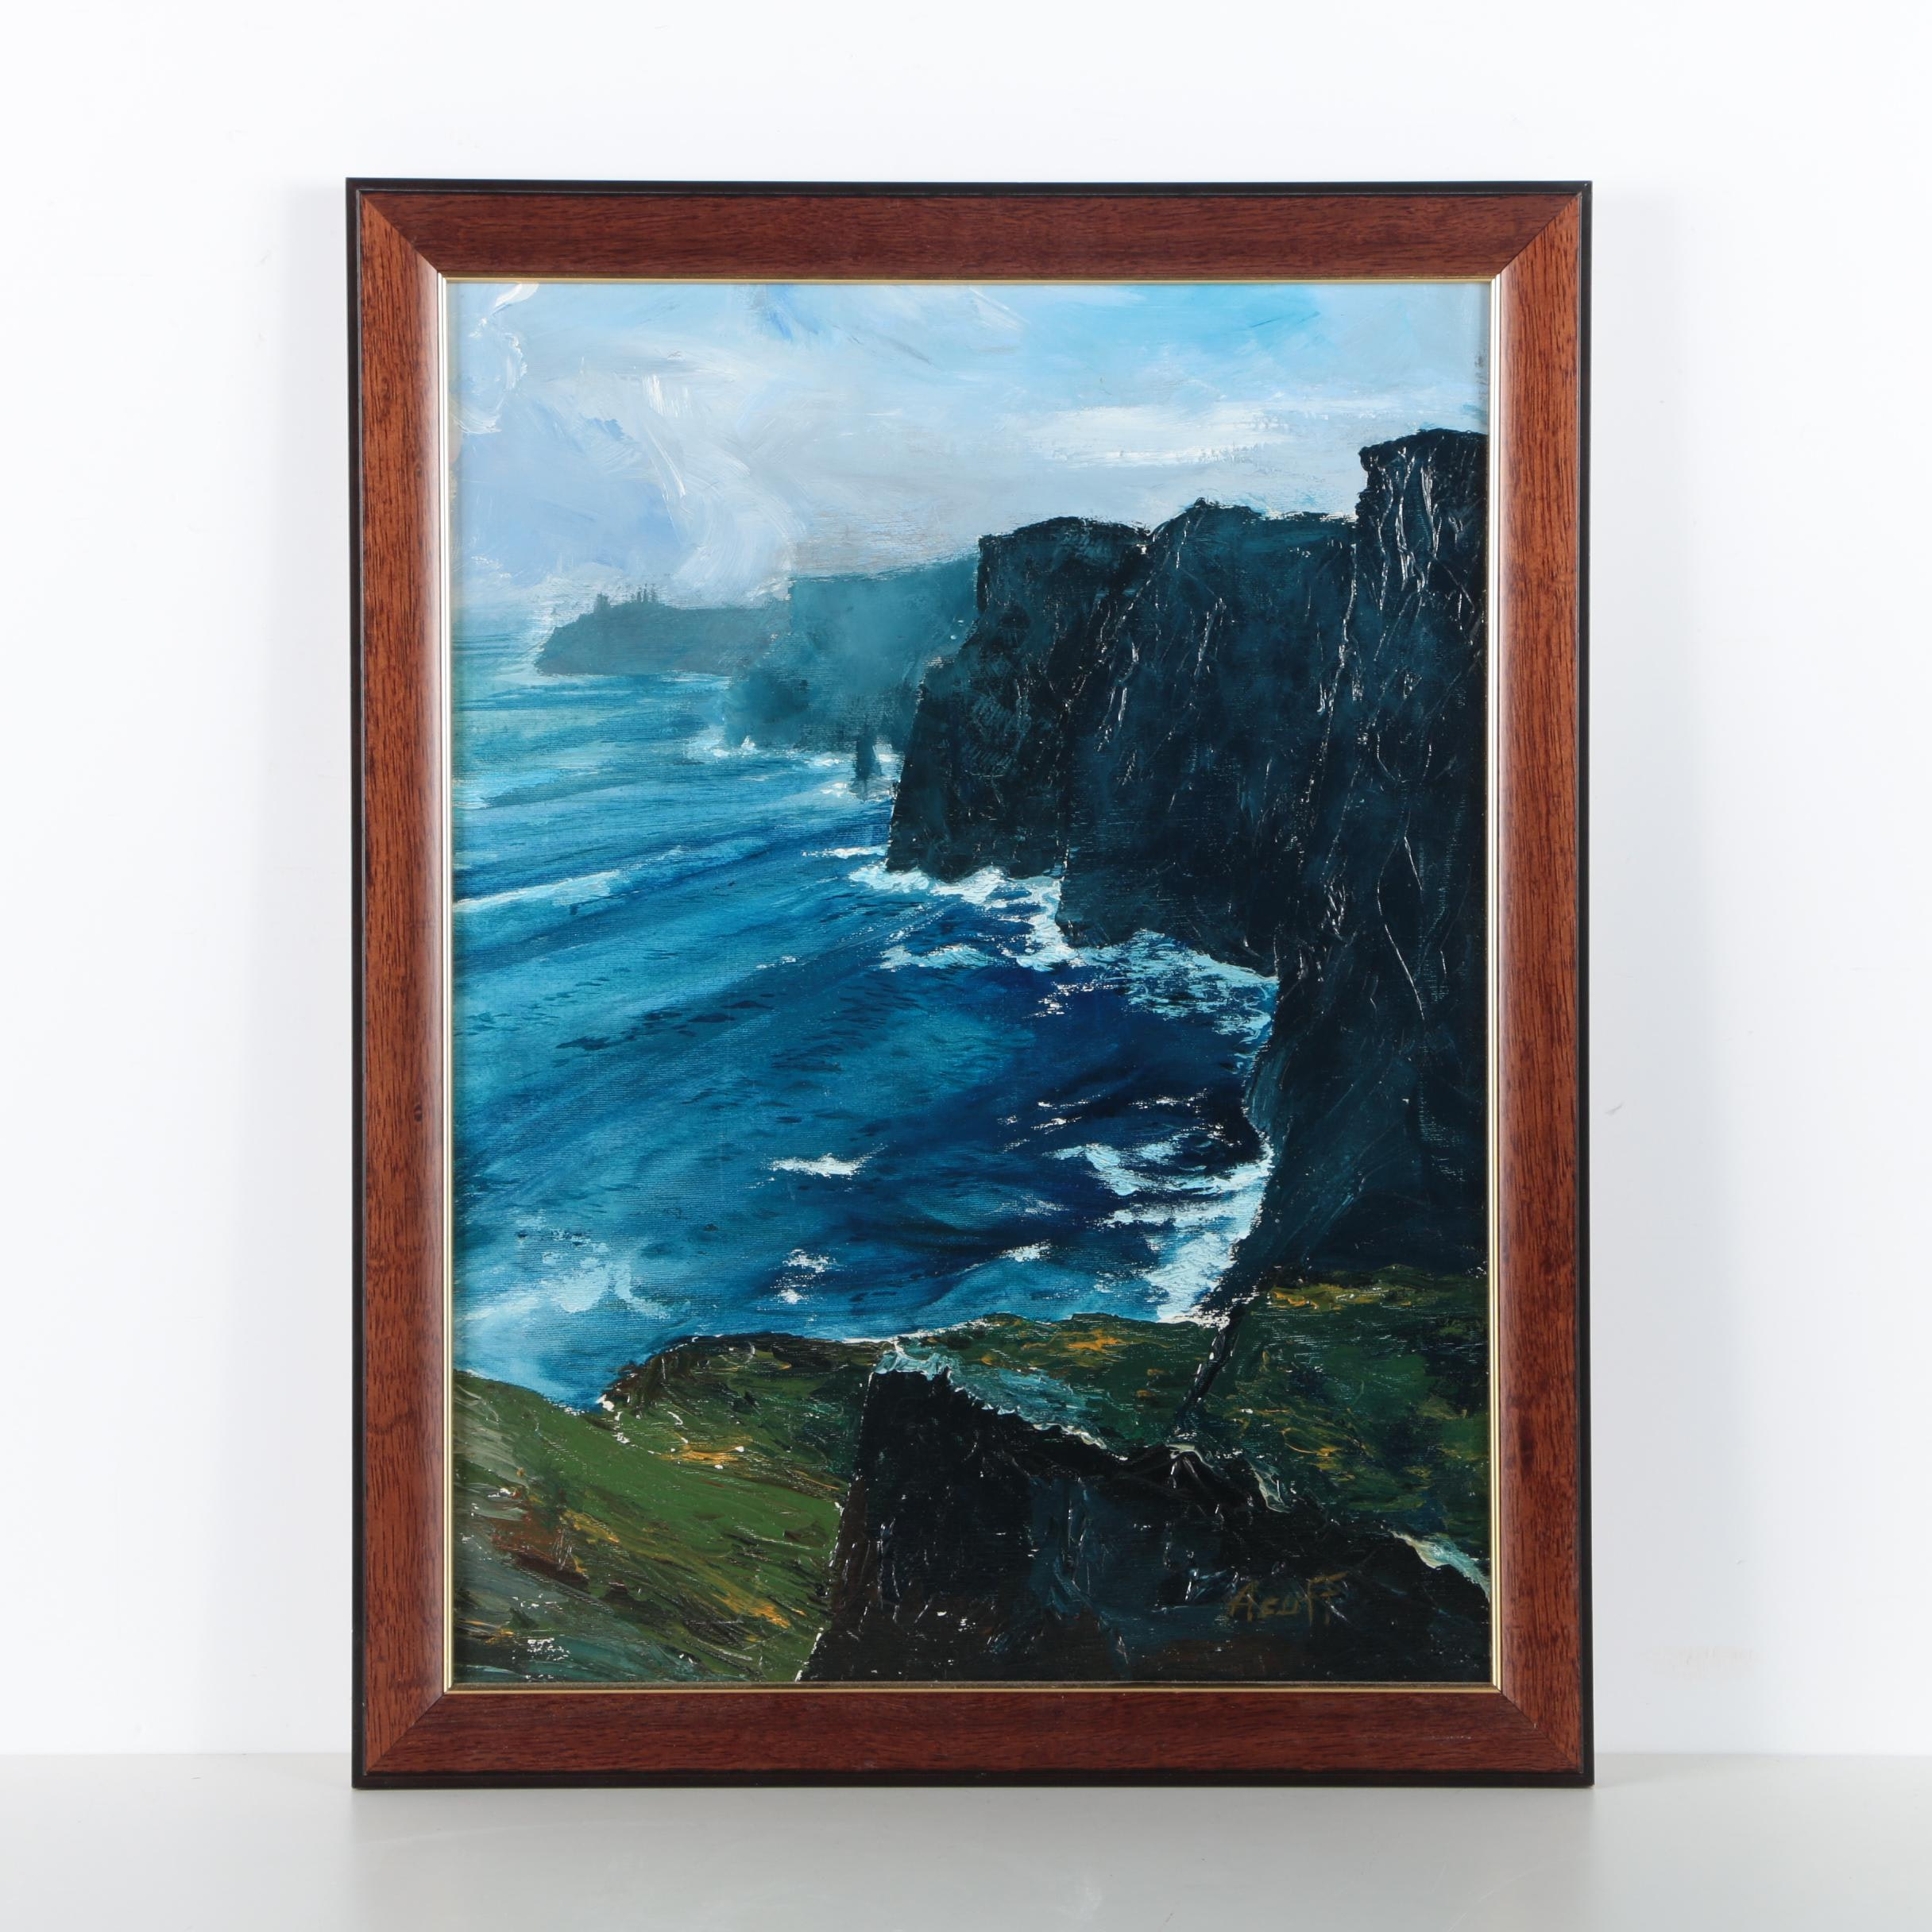 Acrylic Painting on Canvas of a Cliff Shore